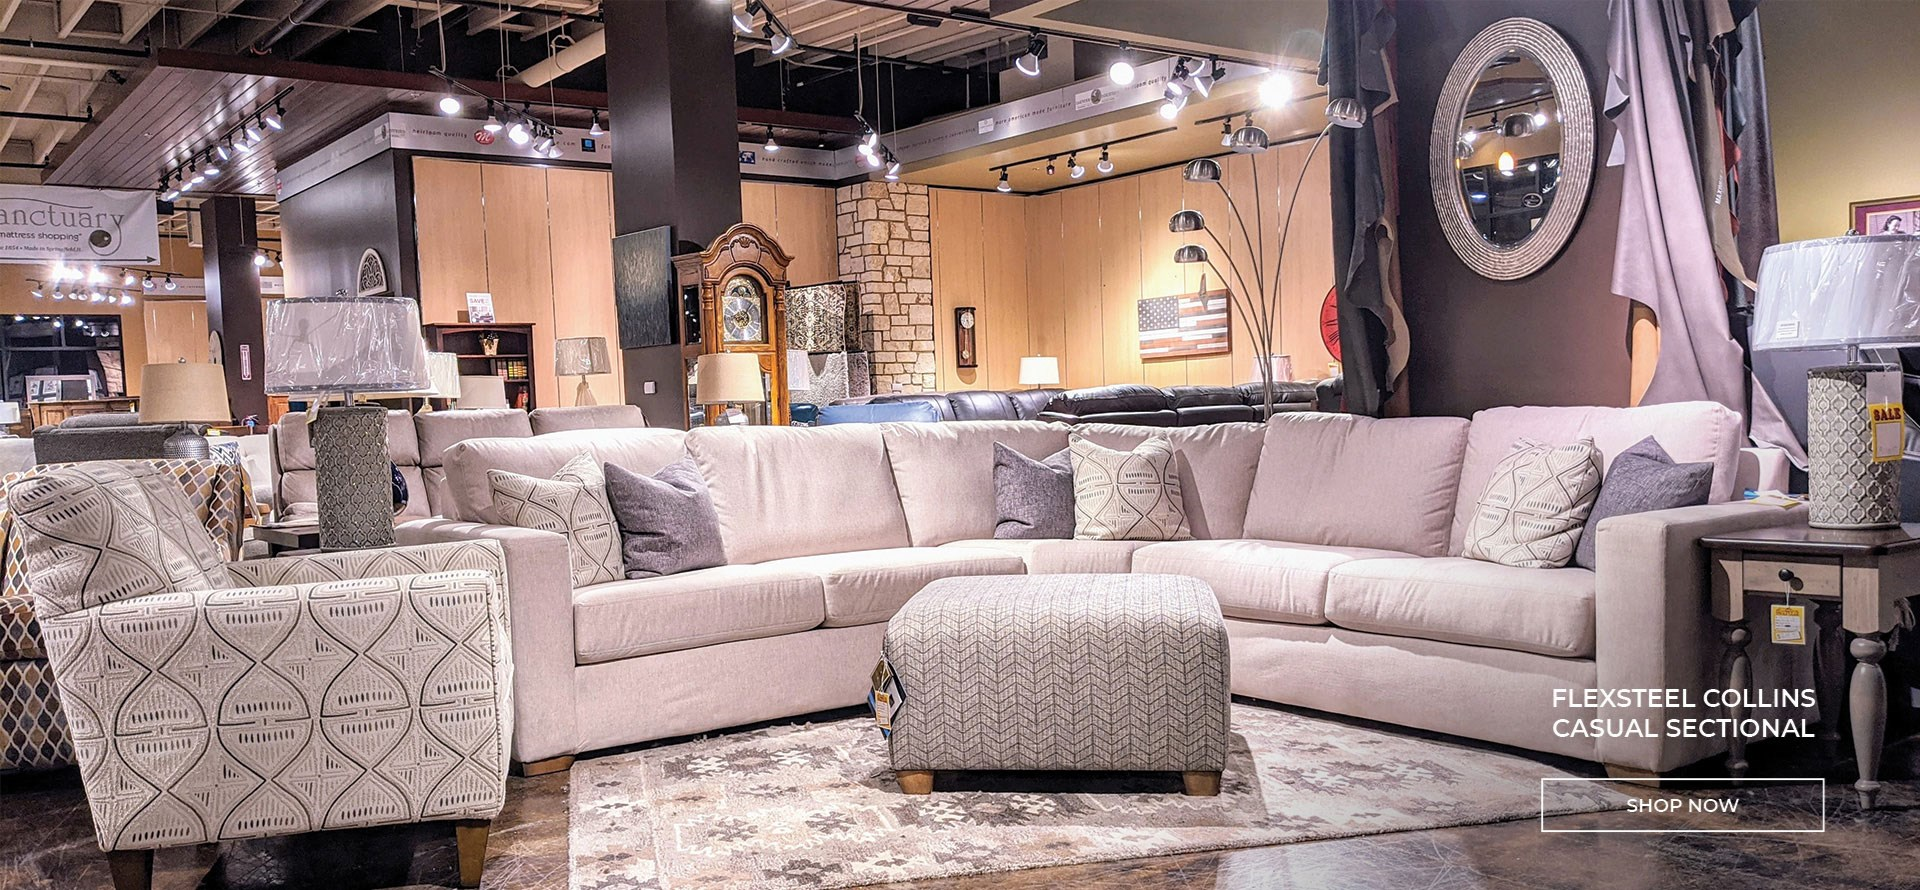 Shop Flexsteel Collins Sectional